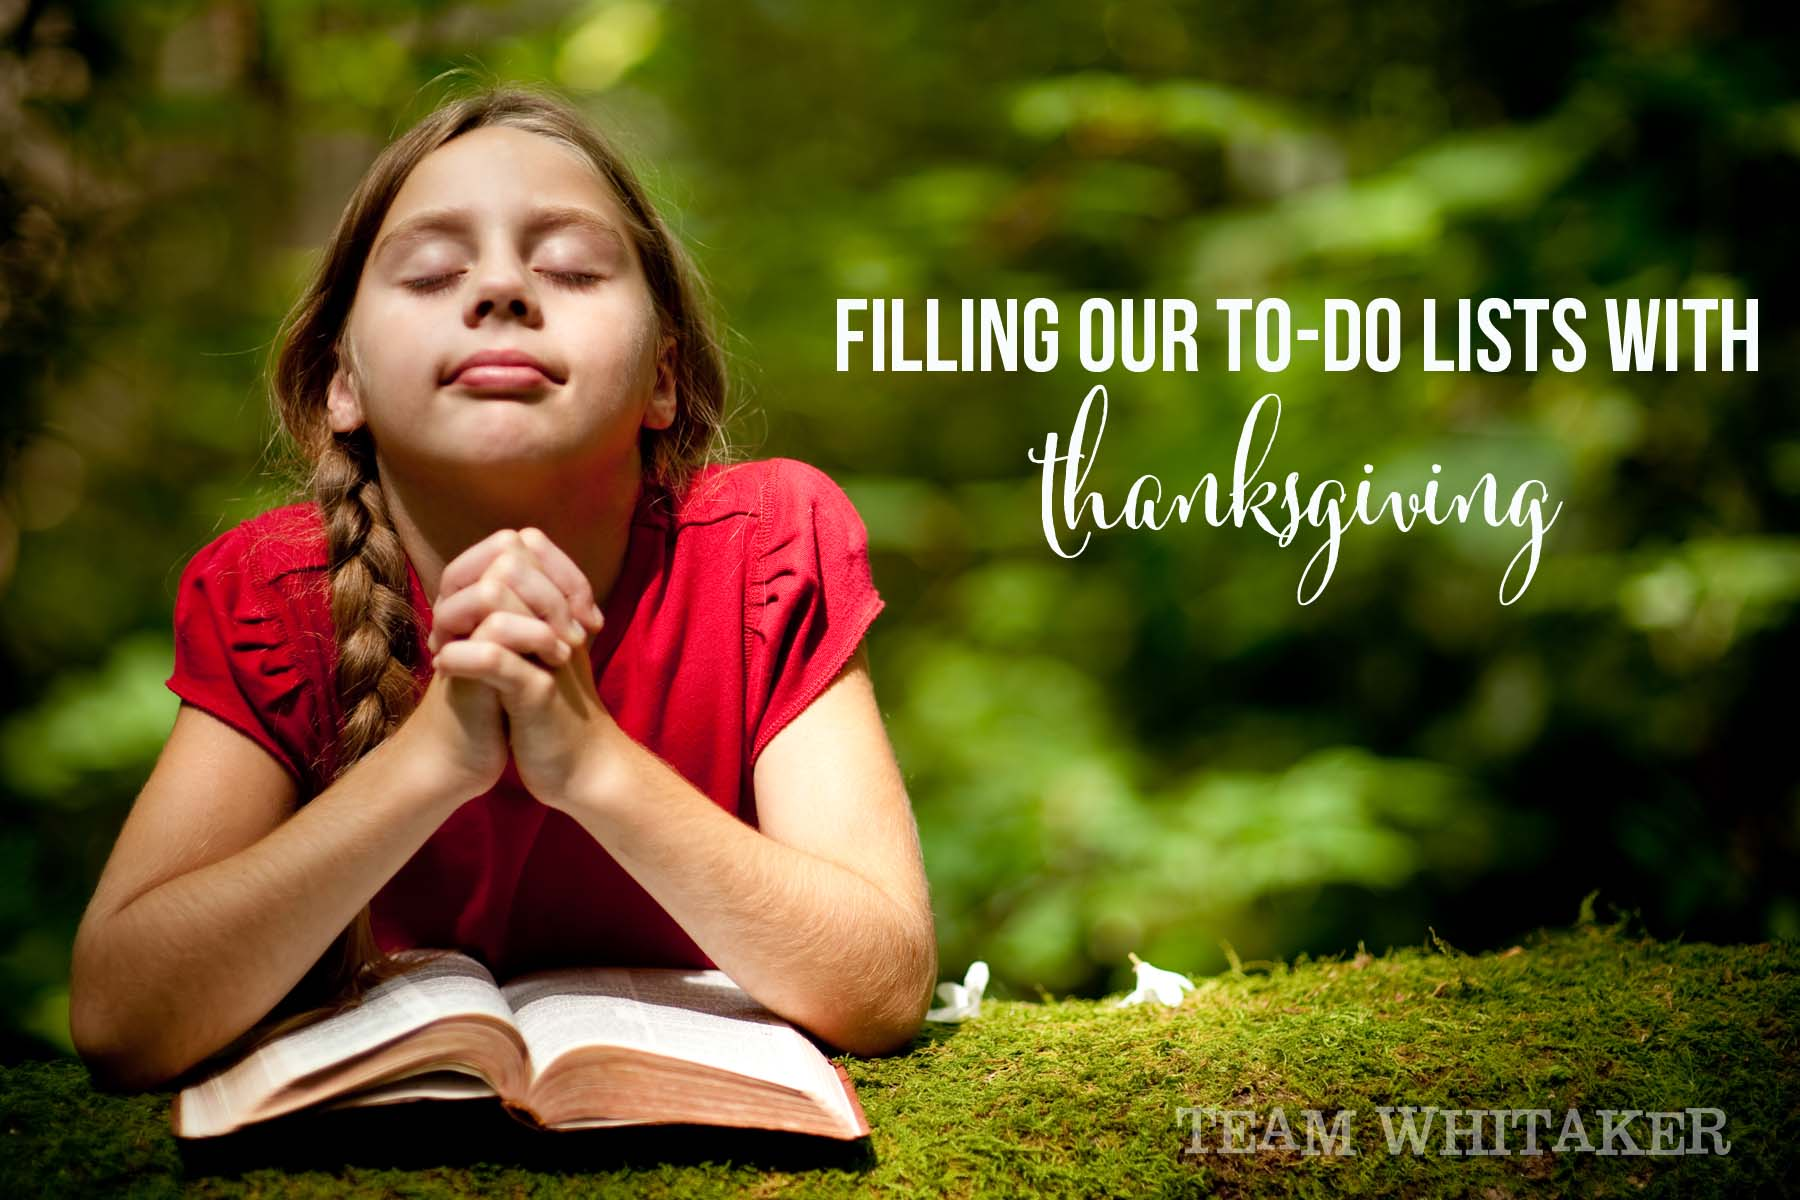 Filling our to-do lists with thanksgiving has a whole lot to do with us, and a whole less with others.